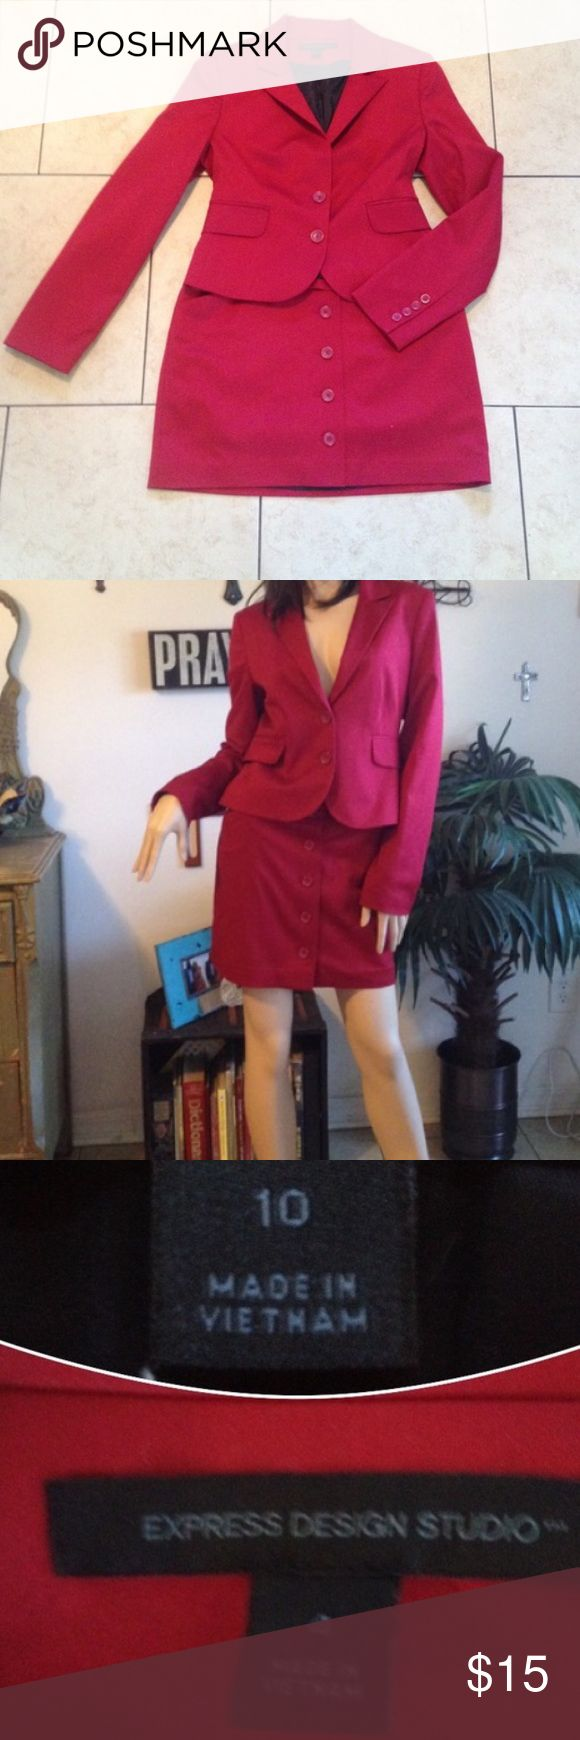 Express red button down suit skirt size 10 Express red button down suit skirt size 10. I have the jacket as well but it's a size 4 so not the perfect match for the skirt unfortunately. 👯 🎉Bundle deals available (I carry various sizes and brands): 2 items 10% off, 3 items 15% off, 4 items or more 20% off 🎉 Express Skirts Mini